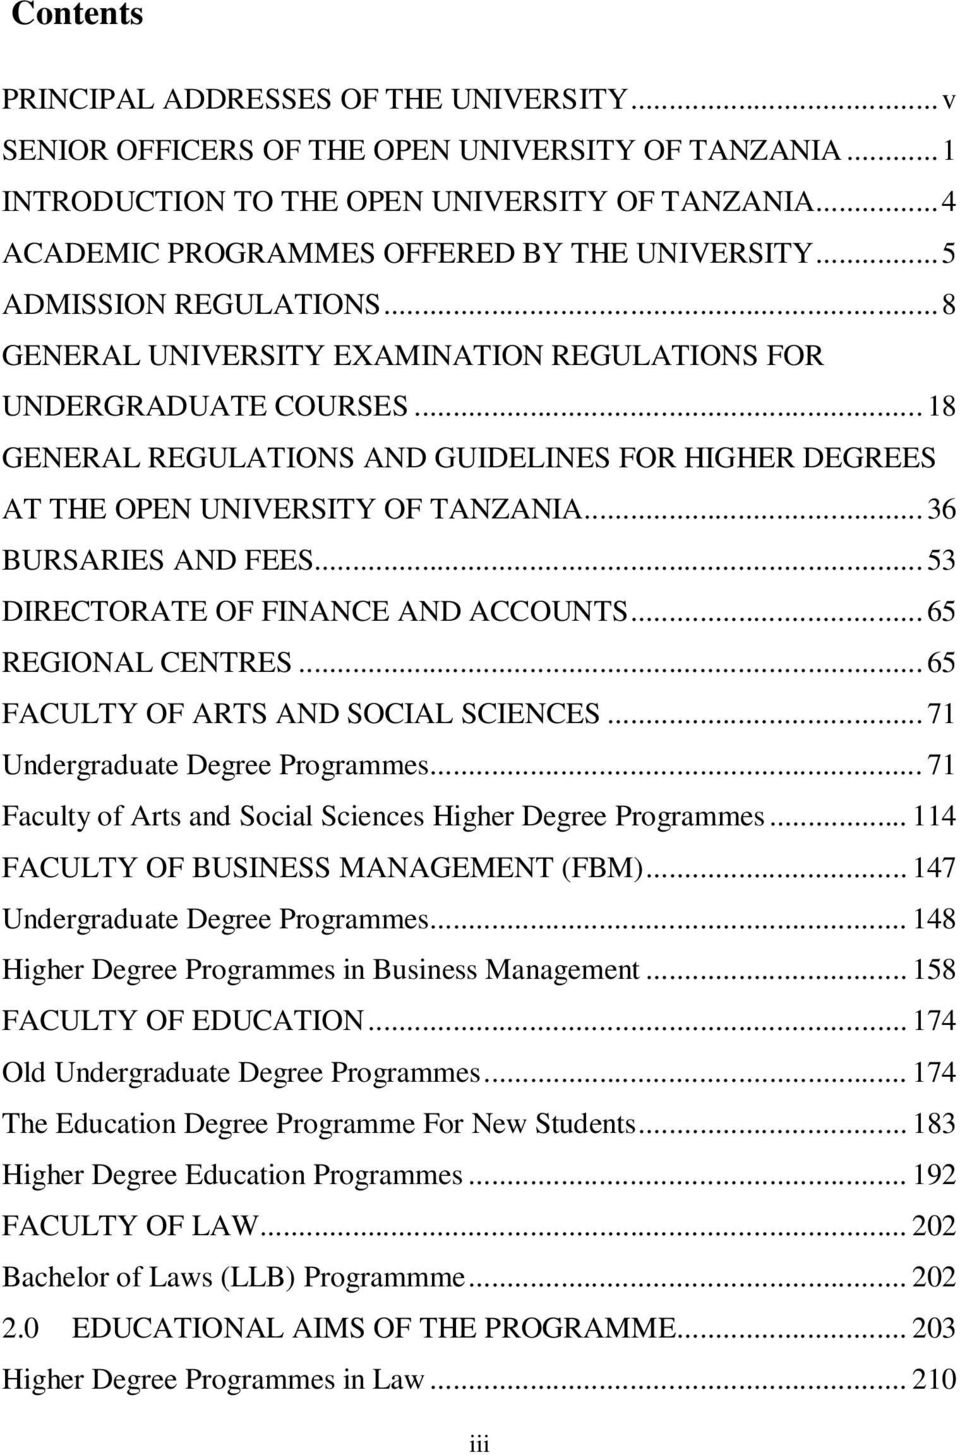 .. 18 GENERAL REGULATIONS AND GUIDELINES FOR HIGHER DEGREES AT THE OPEN UNIVERSITY OF TANZANIA... 36 BURSARIES AND FEES... 53 DIRECTORATE OF FINANCE AND ACCOUNTS... 65 REGIONAL CENTRES.